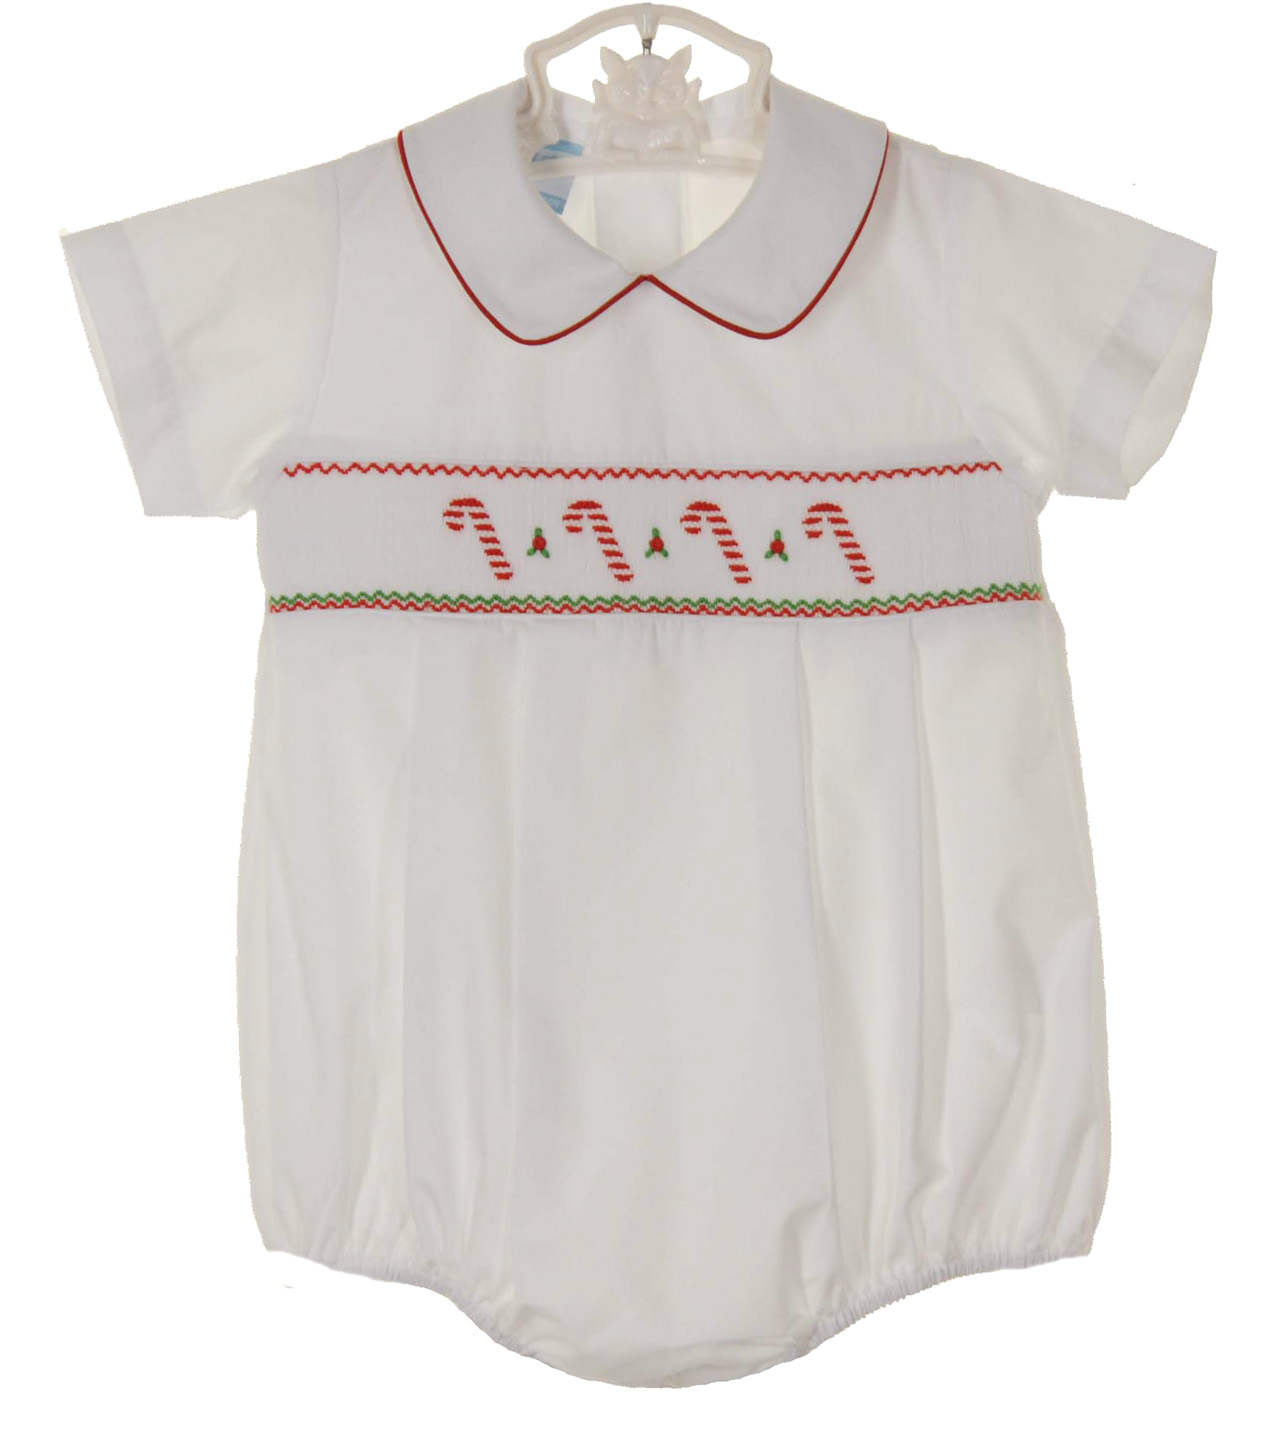 0822fe566e44 Petit Bebe by Anavini white smocked romper with candy cane embroidery